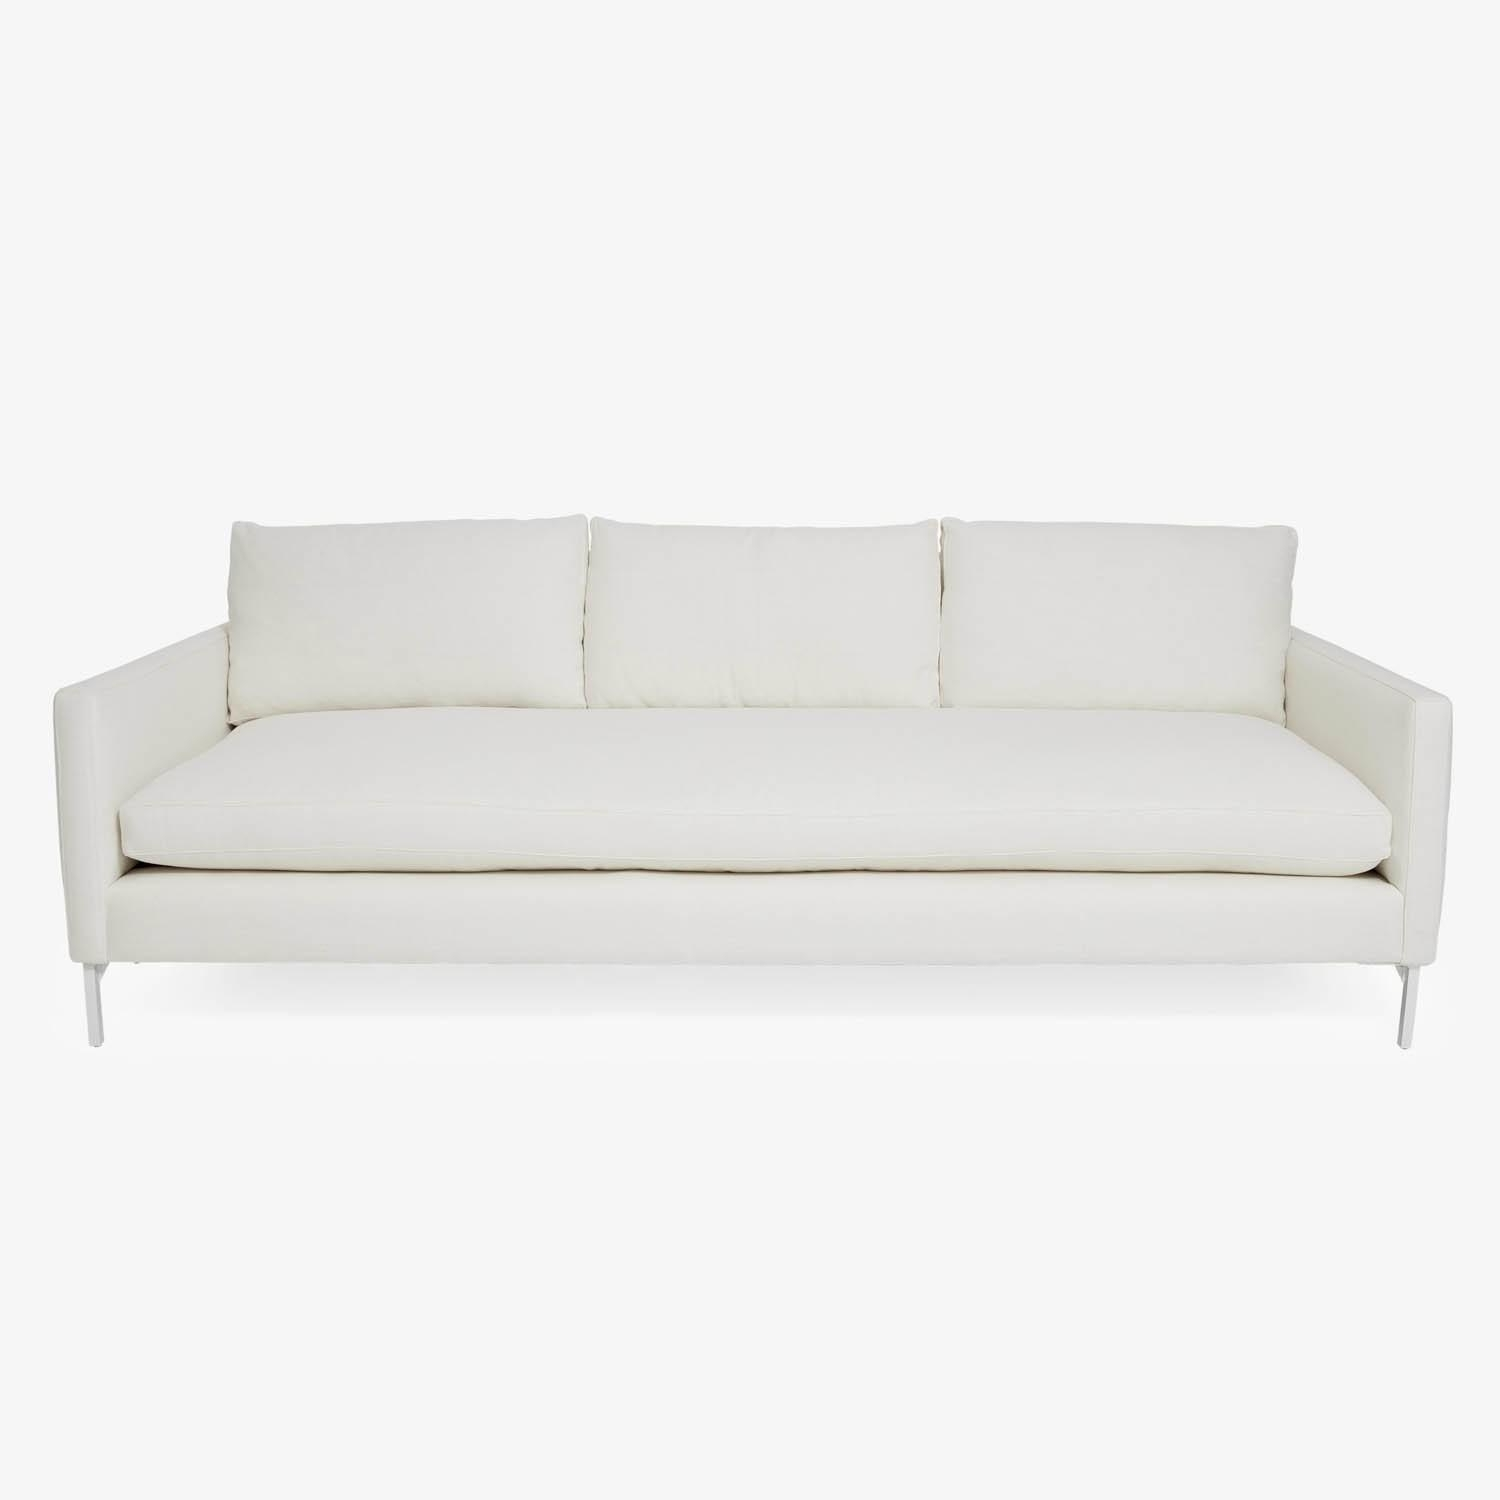 Cobble Hill White Powder Coat Sofa – Abc Carpet & Home With Regard To Cobble Hill Sofas (Image 15 of 20)